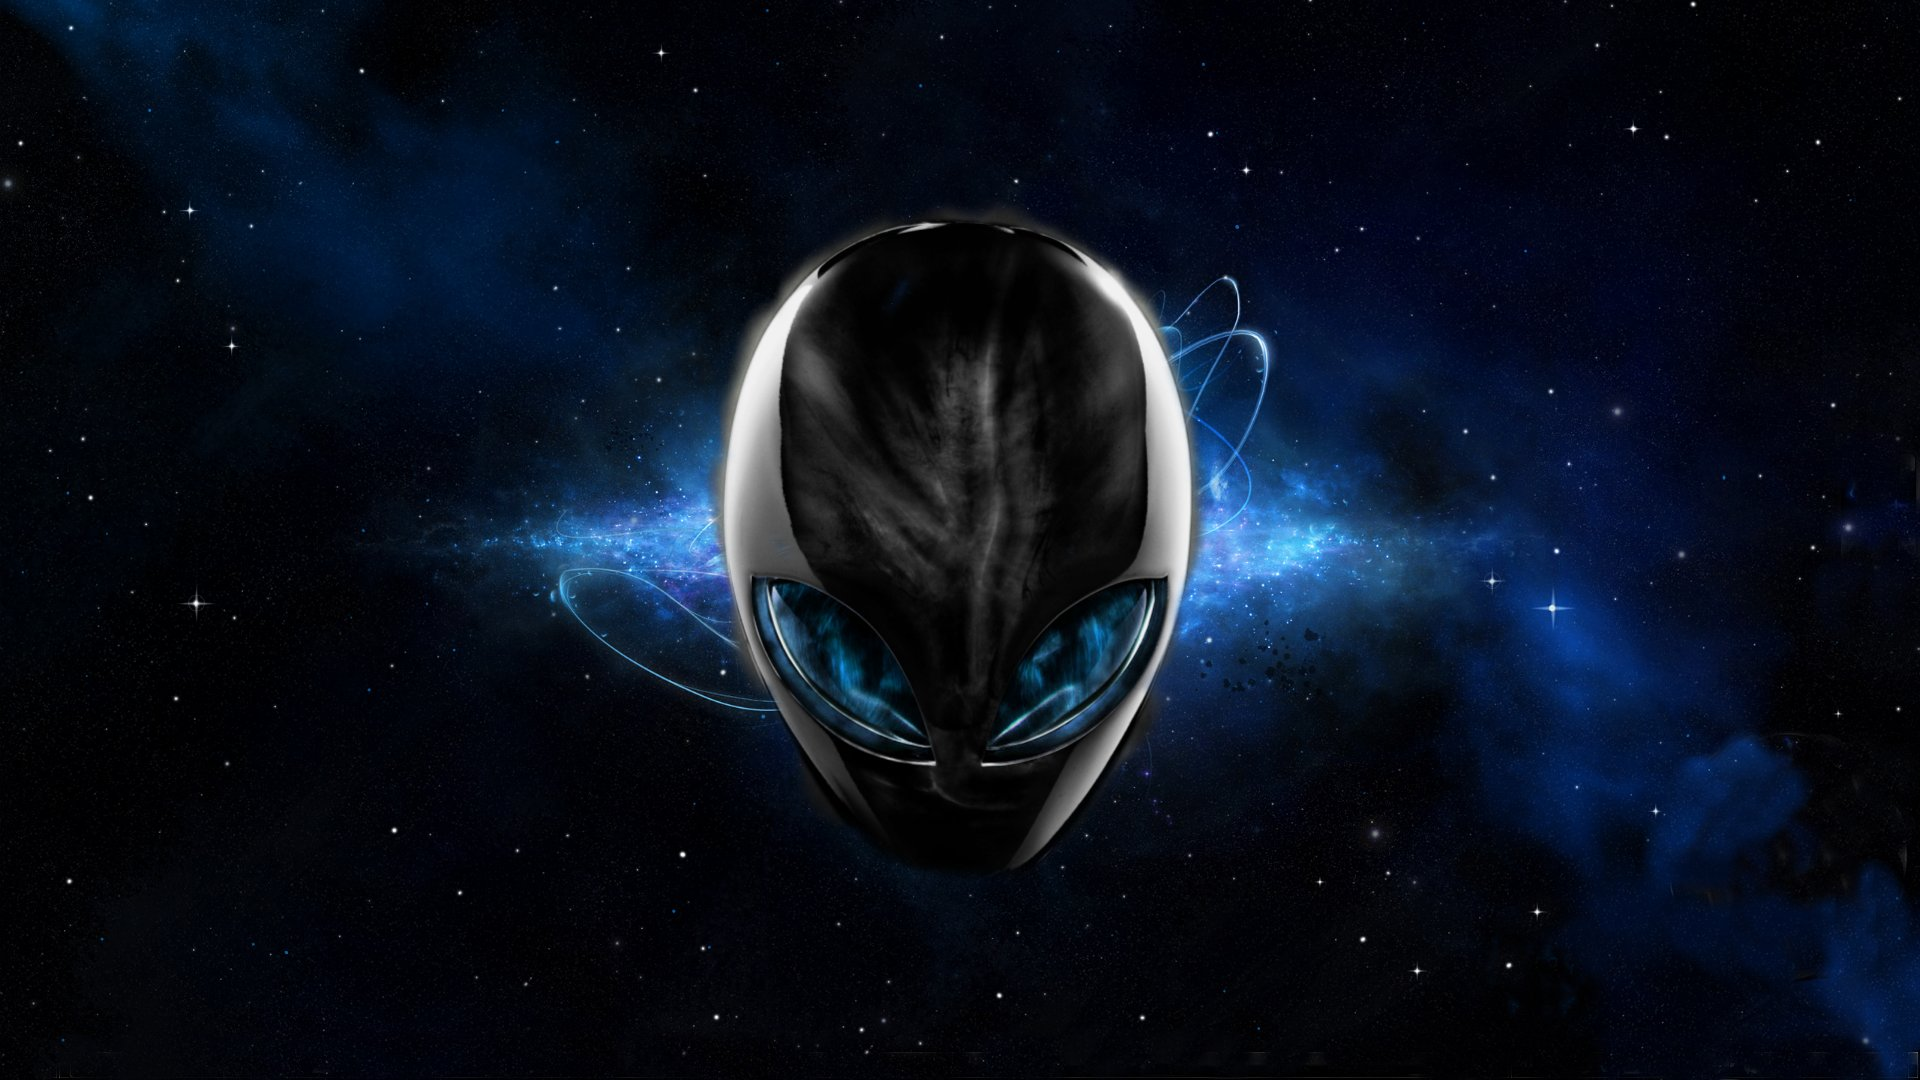 125 alienware hd wallpapers | background images - wallpaper abyss